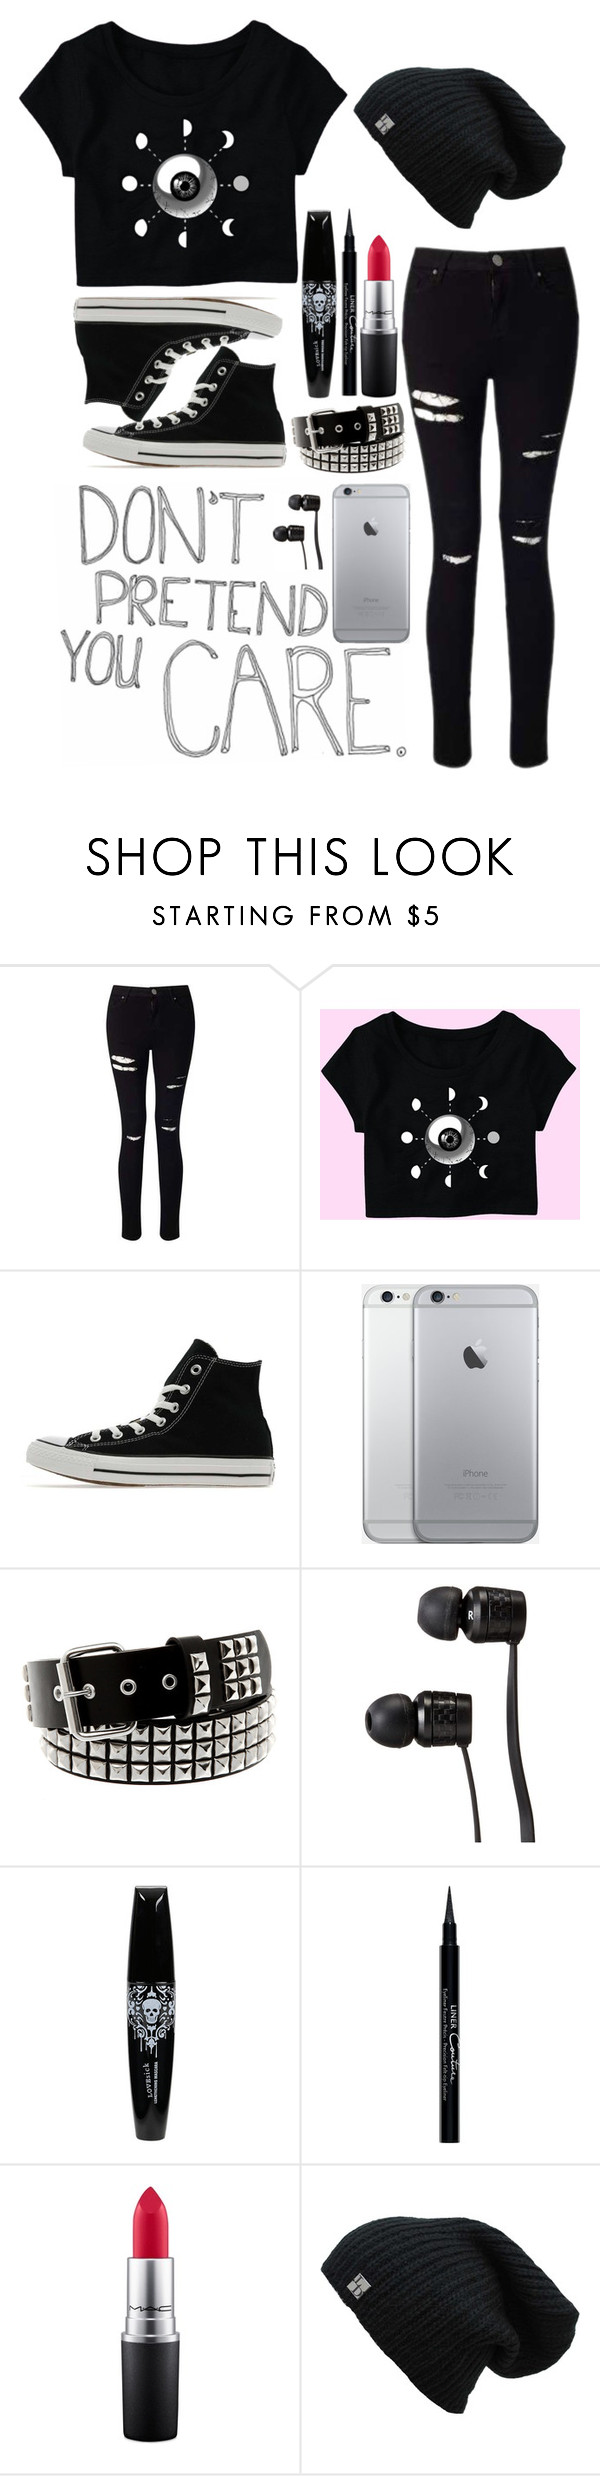 """No one cares..."" by exotic-demon-wolf ❤ liked on Polyvore featuring Love Quotes Scarves, Miss Selfridge, Converse, Vans, Givenchy and MAC Cosmetics"